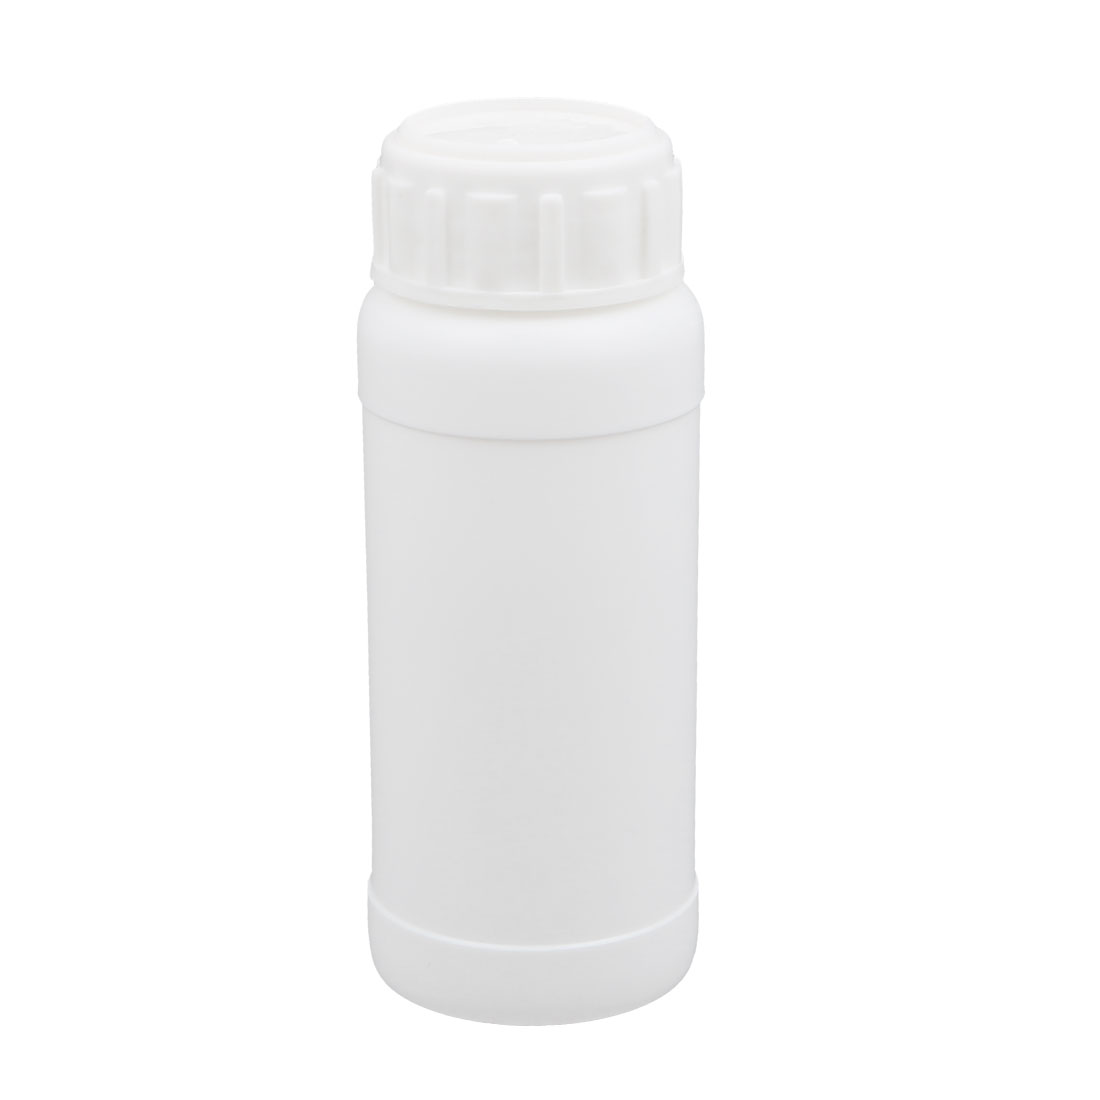 100ml Plastic White Round Solid Powder Bottle Storage Container Jar